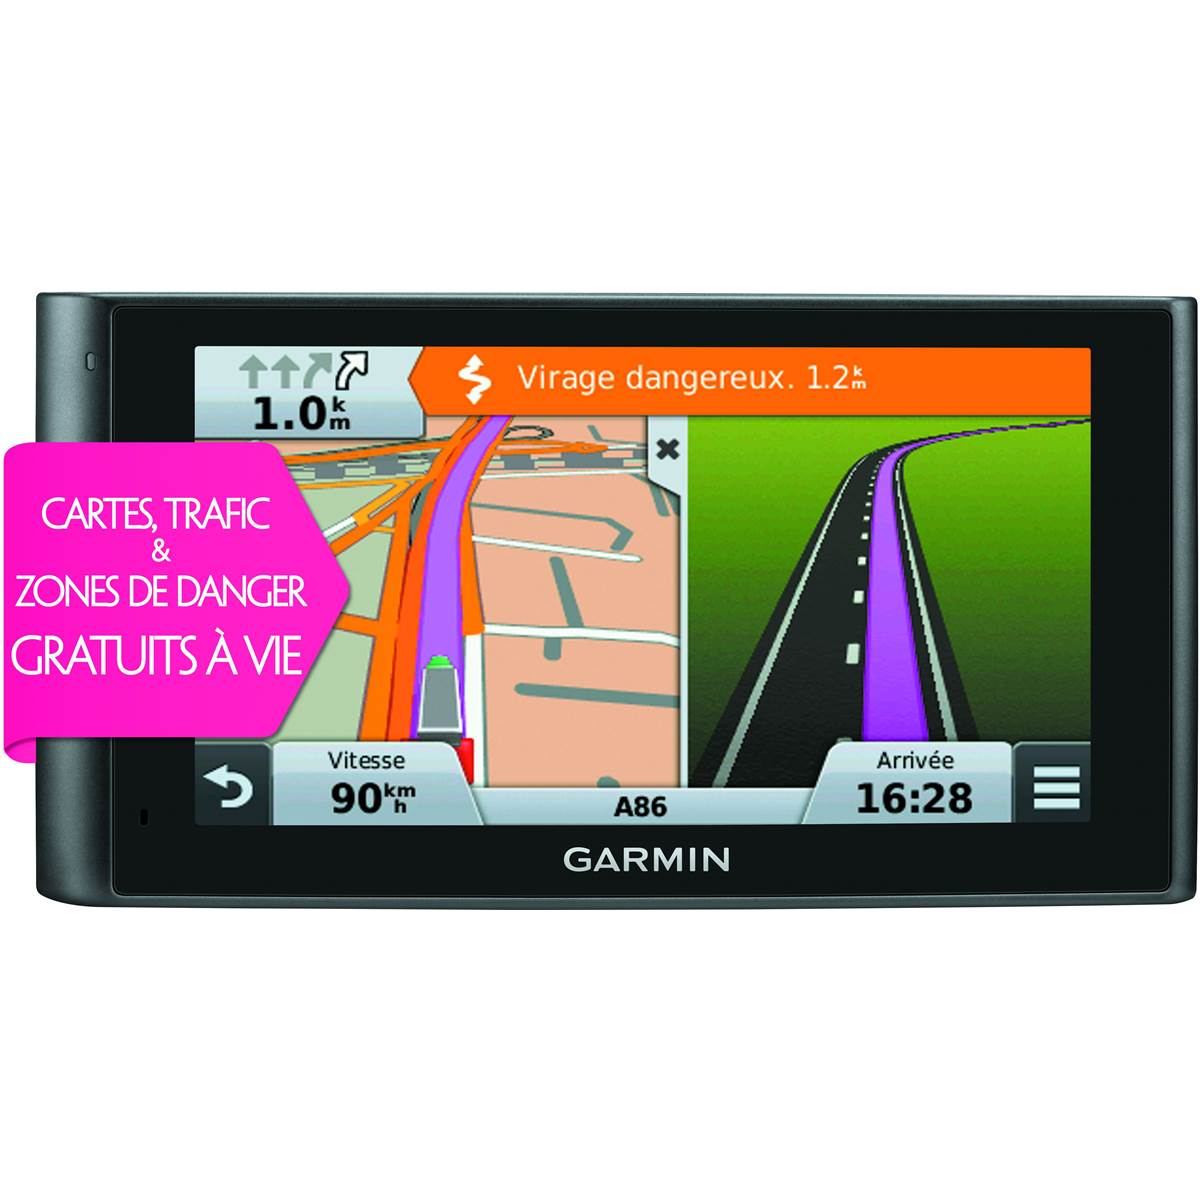 garmin gps achat vente de garmin pas cher. Black Bedroom Furniture Sets. Home Design Ideas